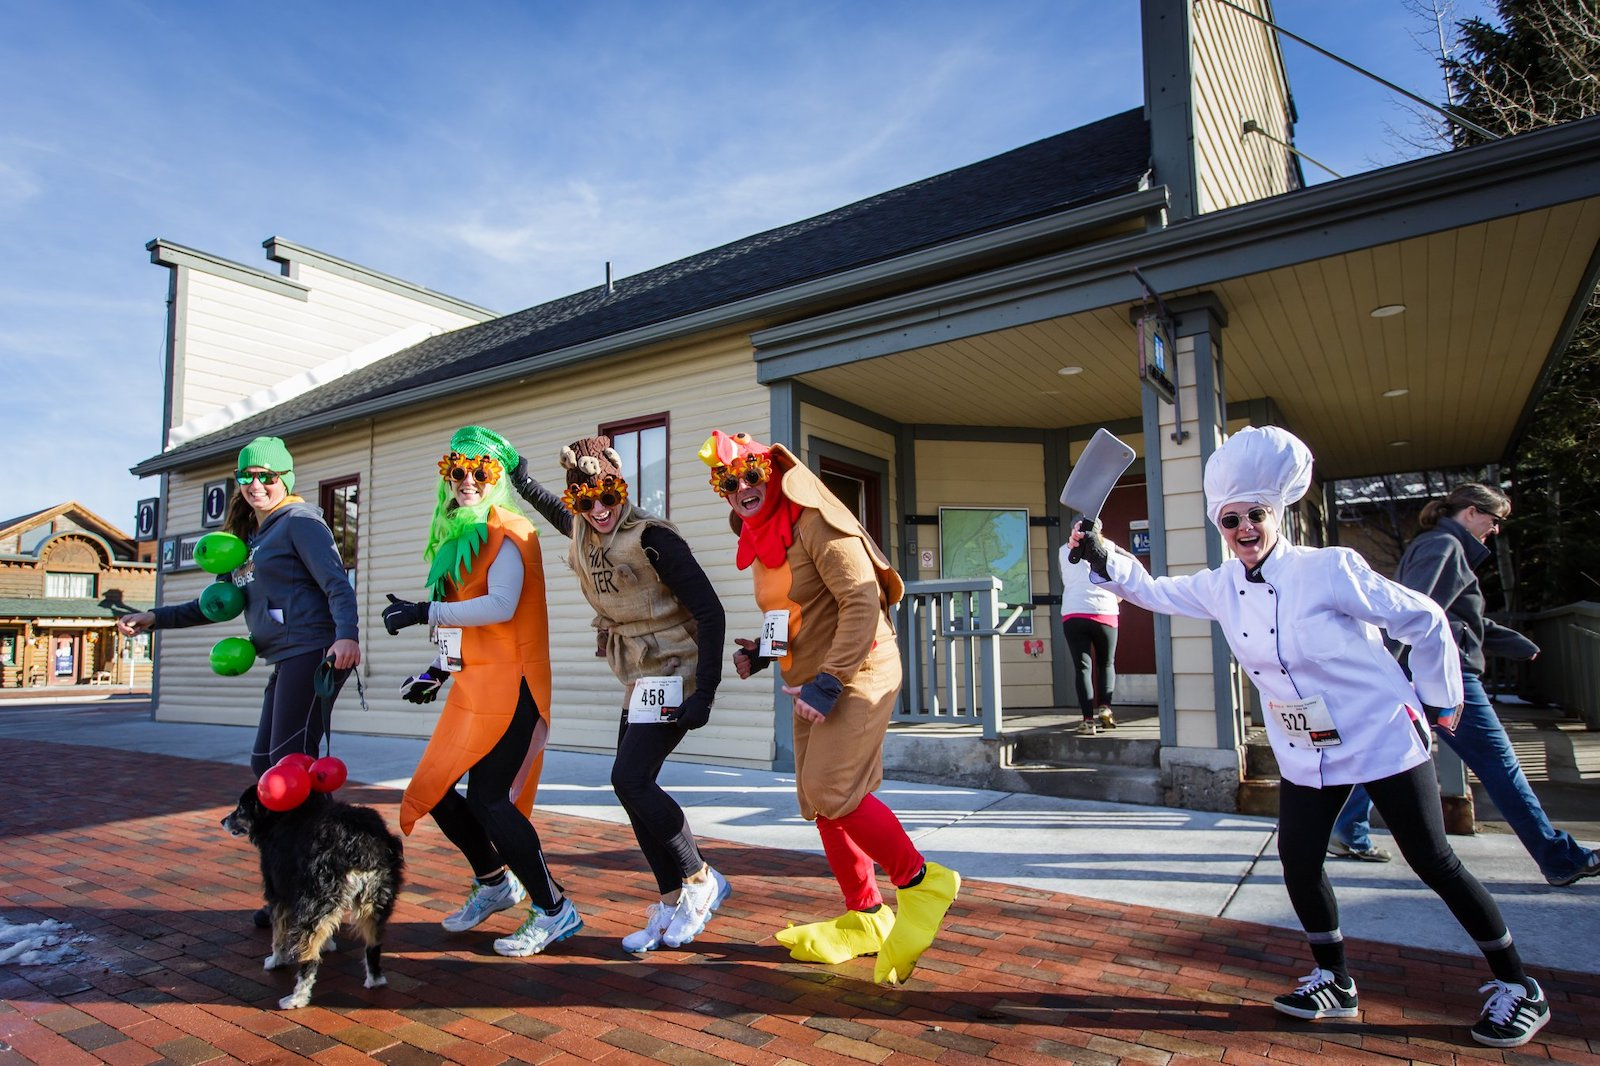 Image of people in costumes for the Turkey Day 5k in Frisco, Colorado